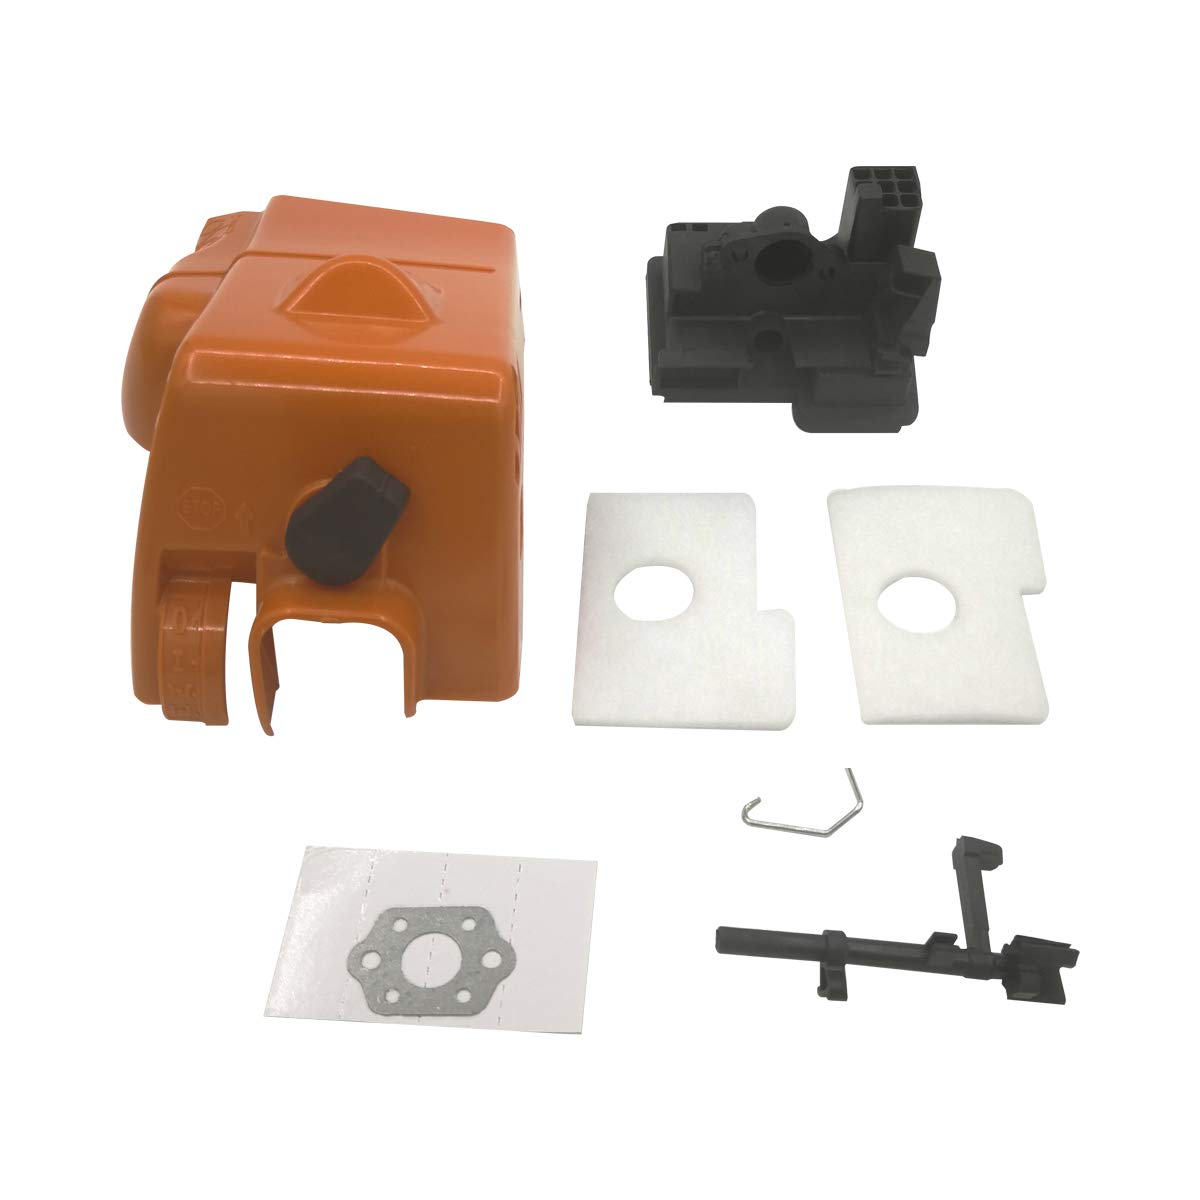 Top Engine Shroud Cylinder Air Filter Cover Fit STIHL 017 018 MS170//180 Chainsaw